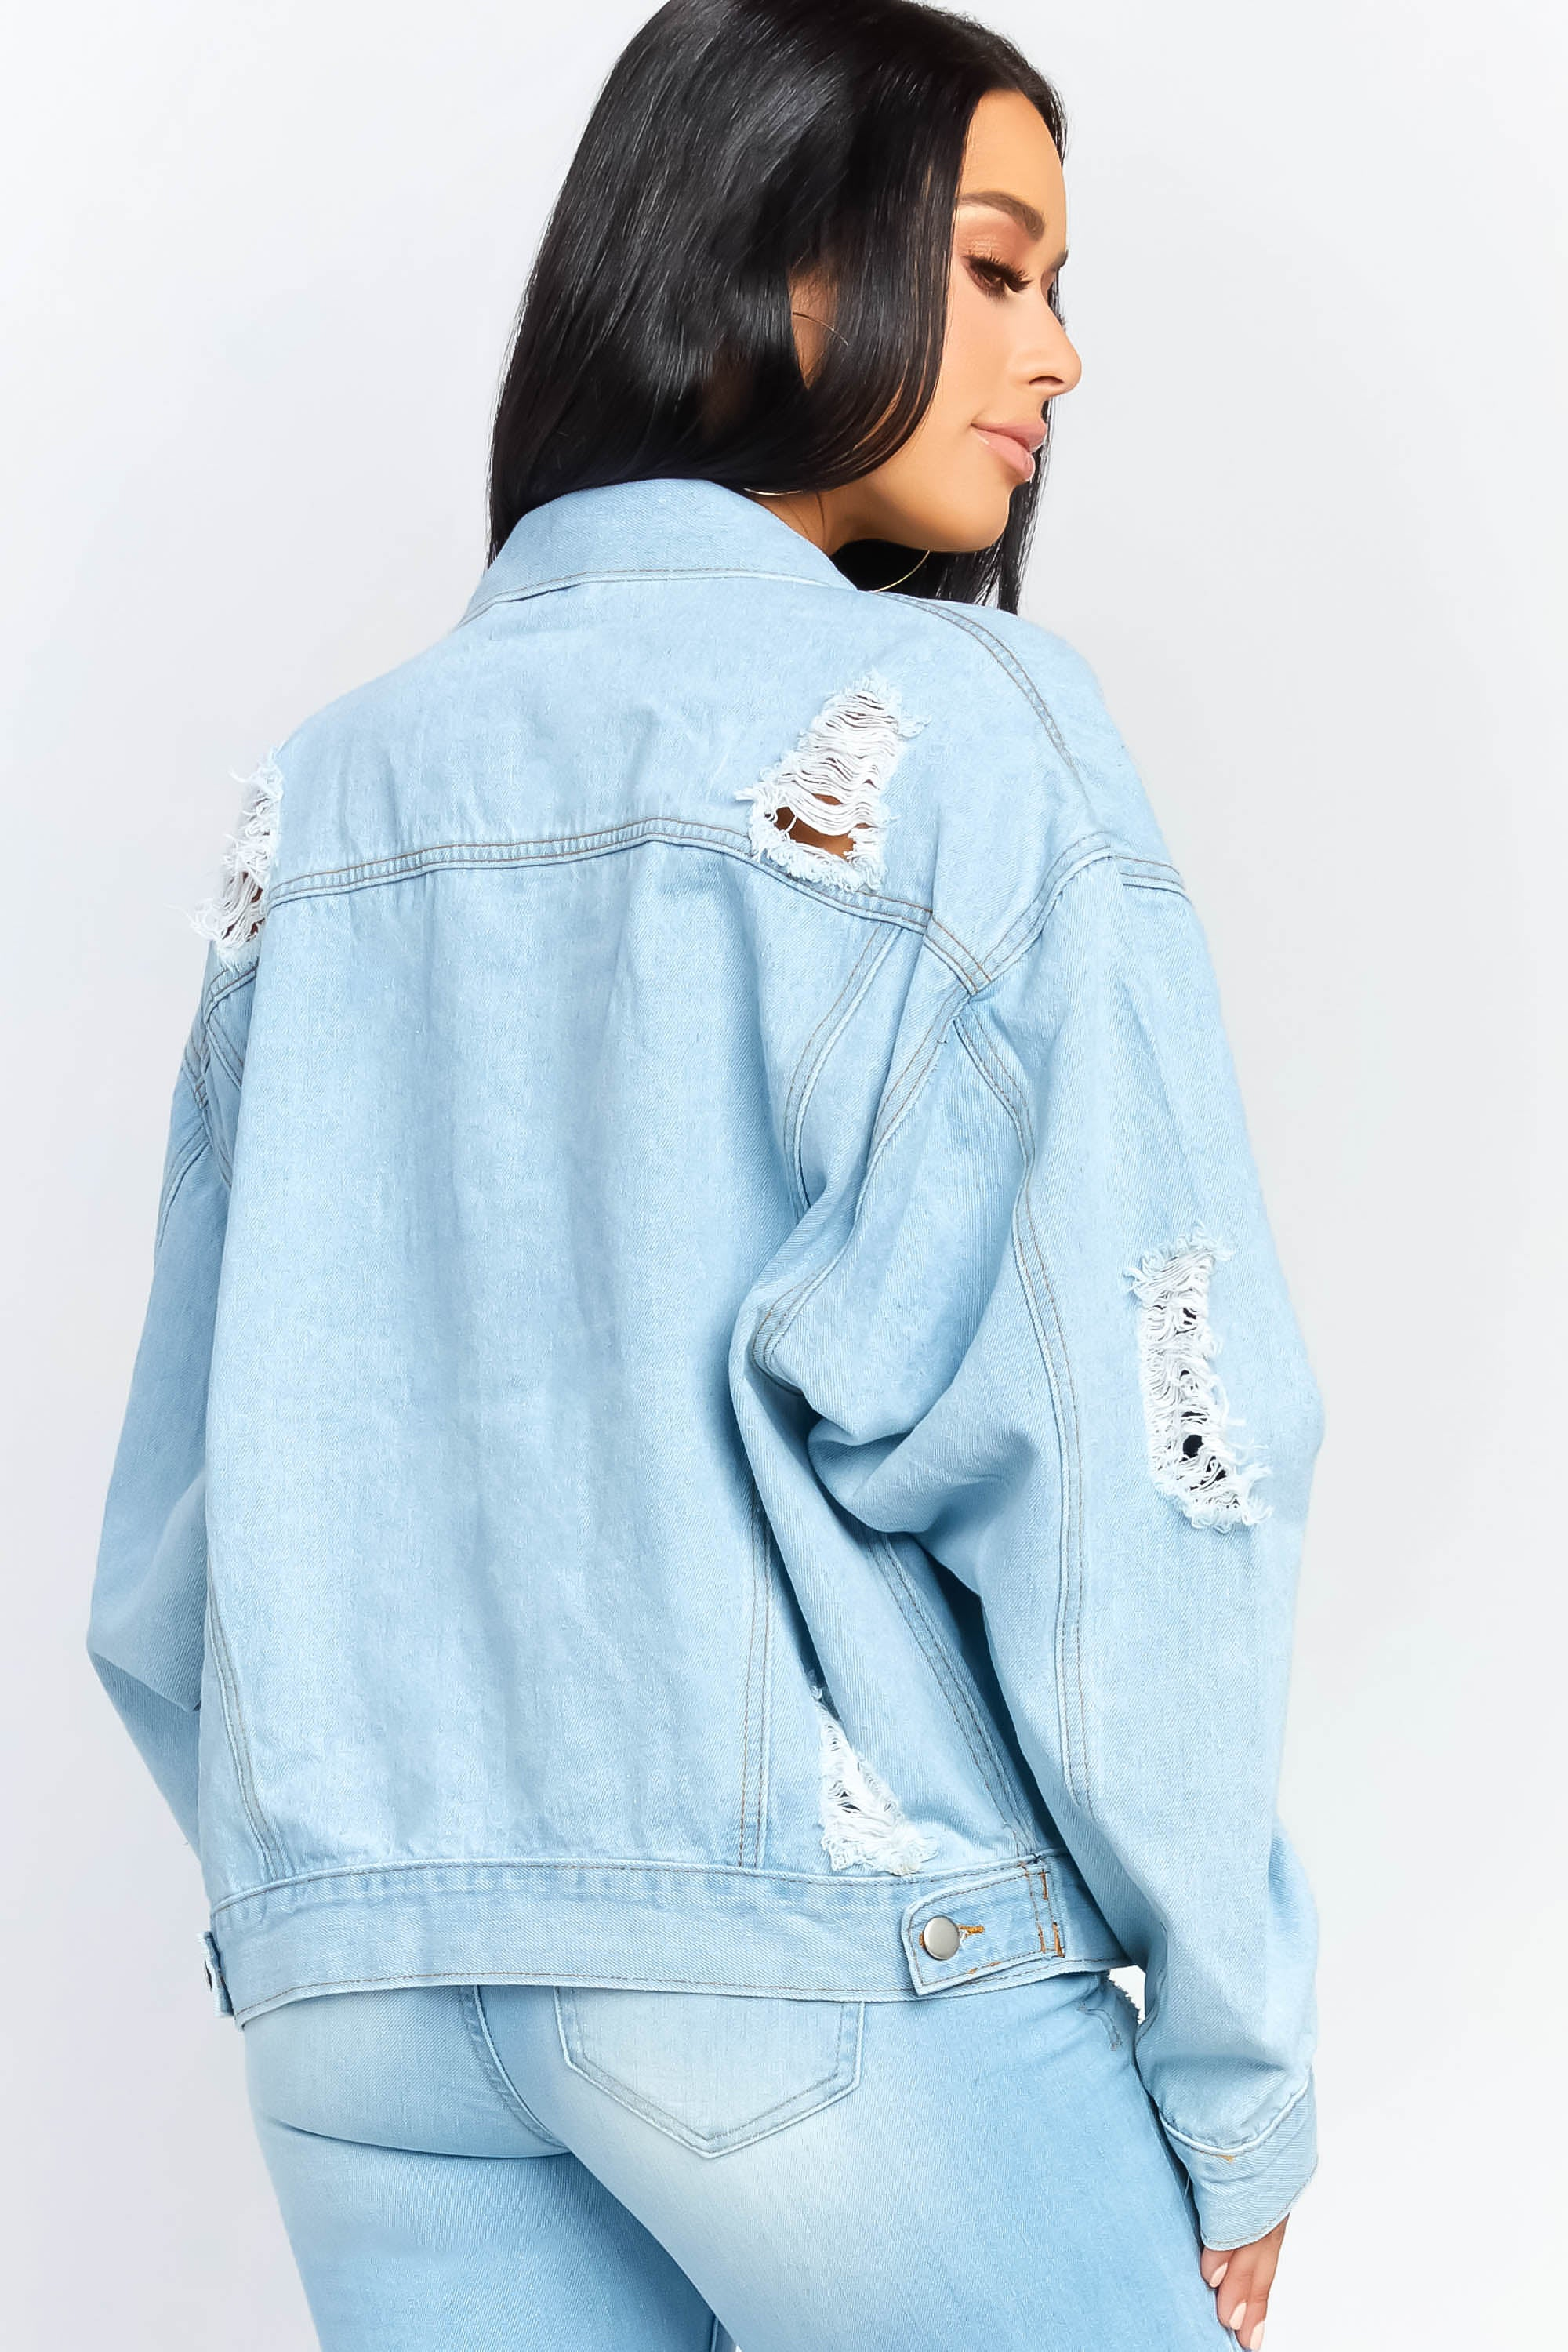 I Want It Denim Jacket